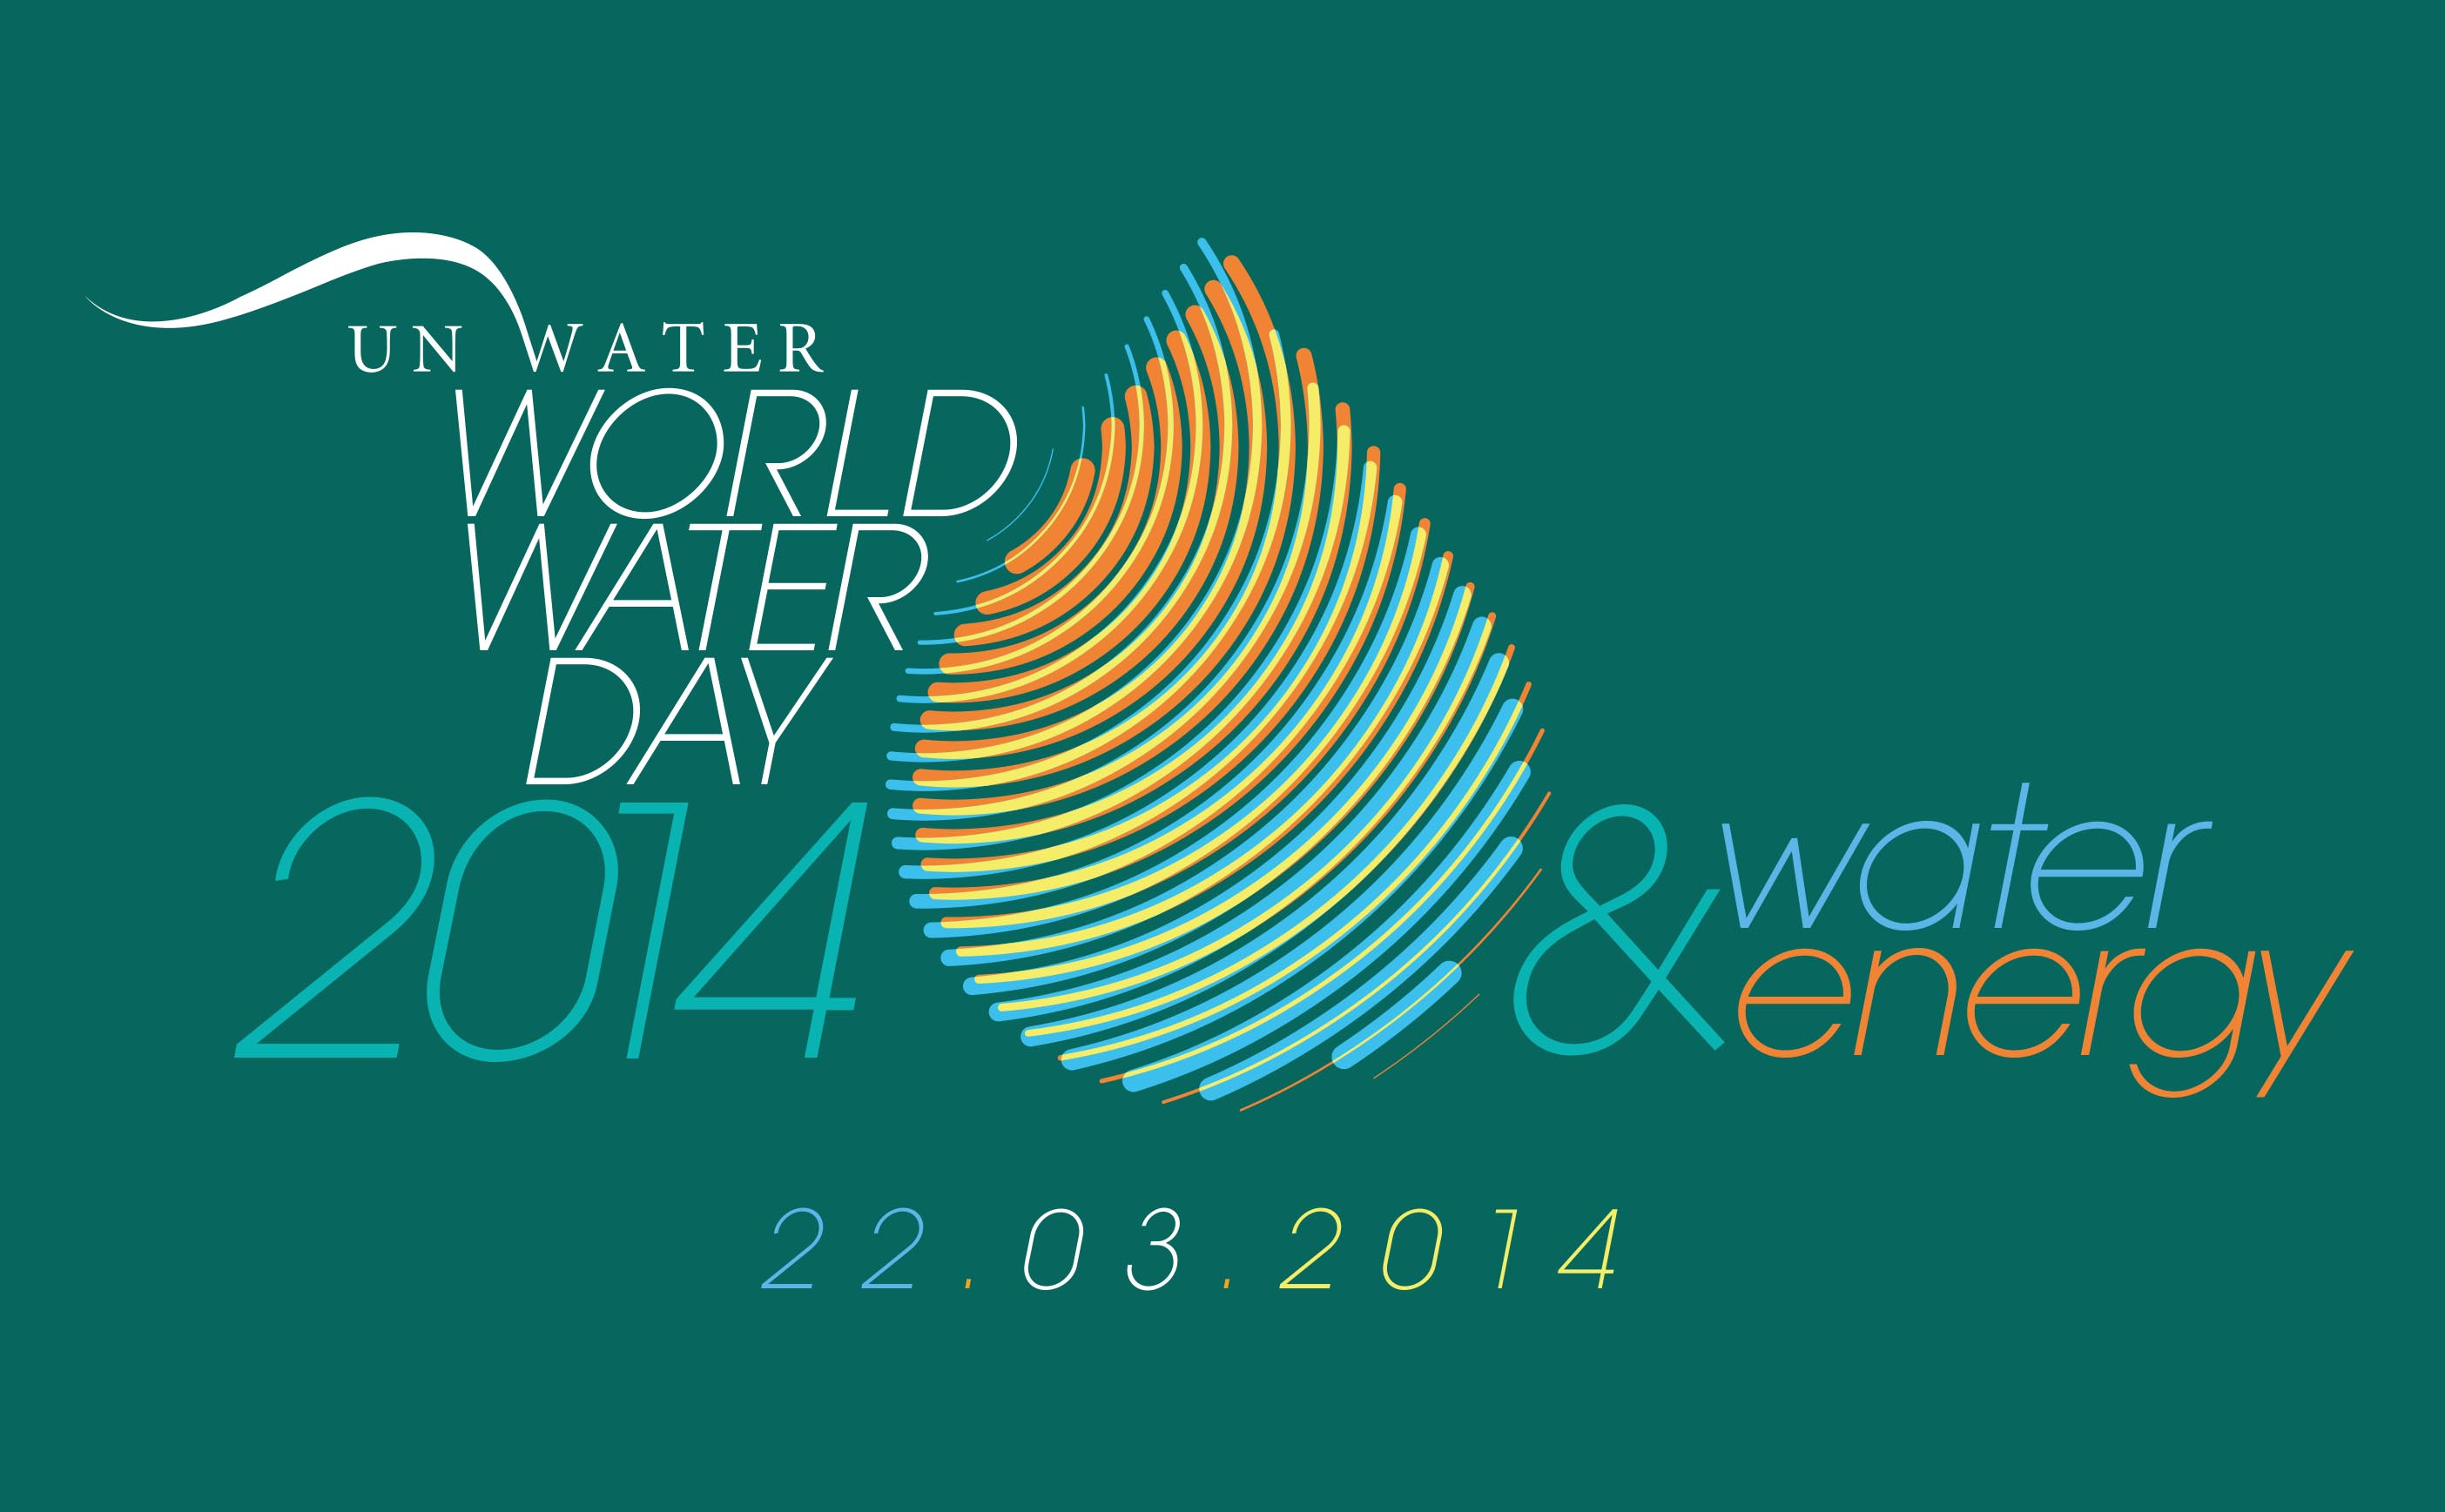 Dirty water; stunted lives: World Water Day